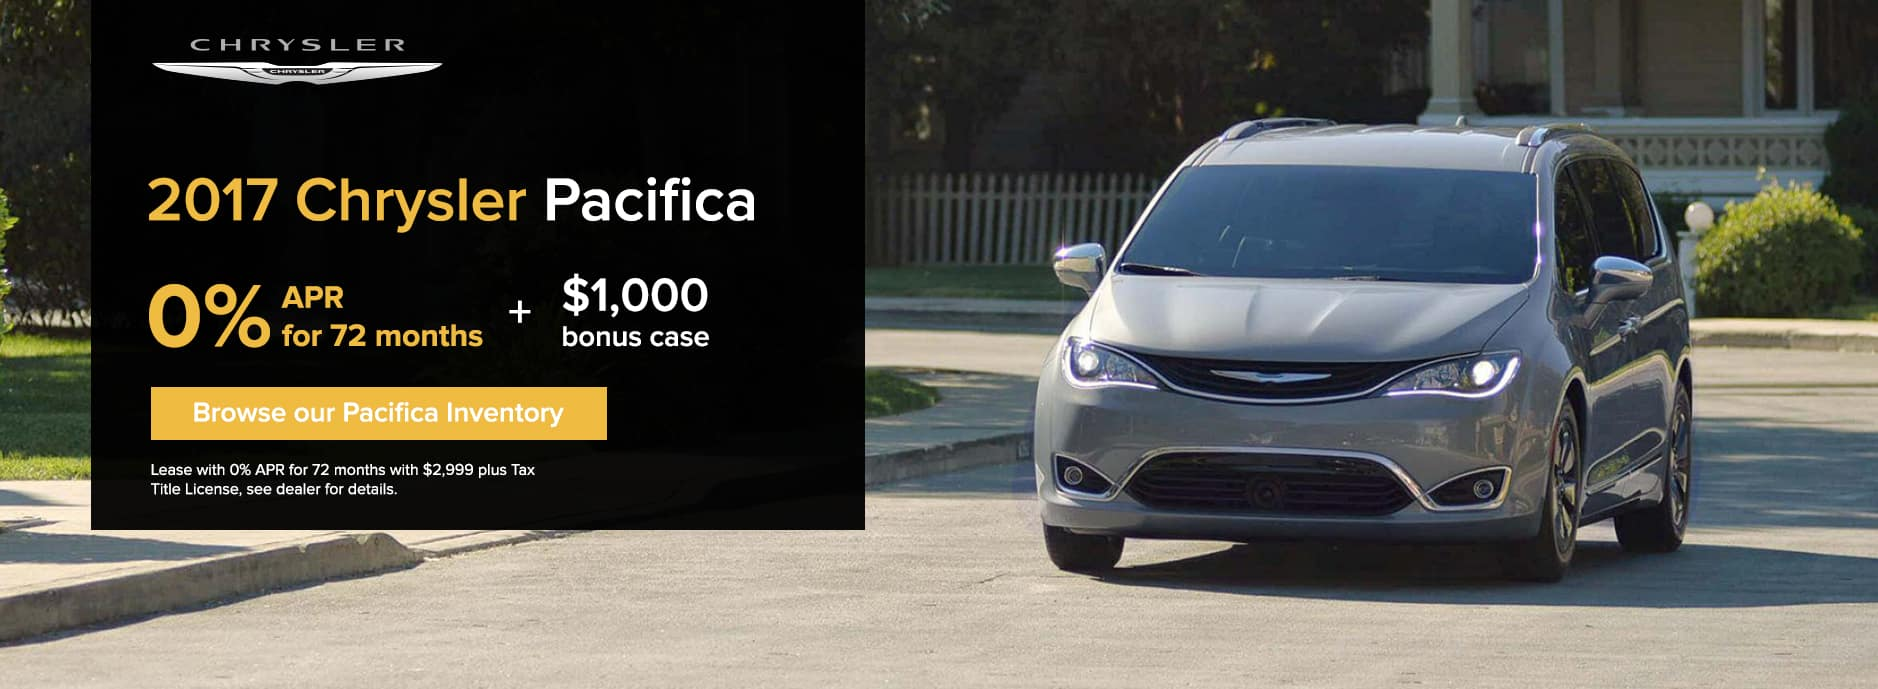 Chrysler Pacifica November Offer Zeigler CDJ